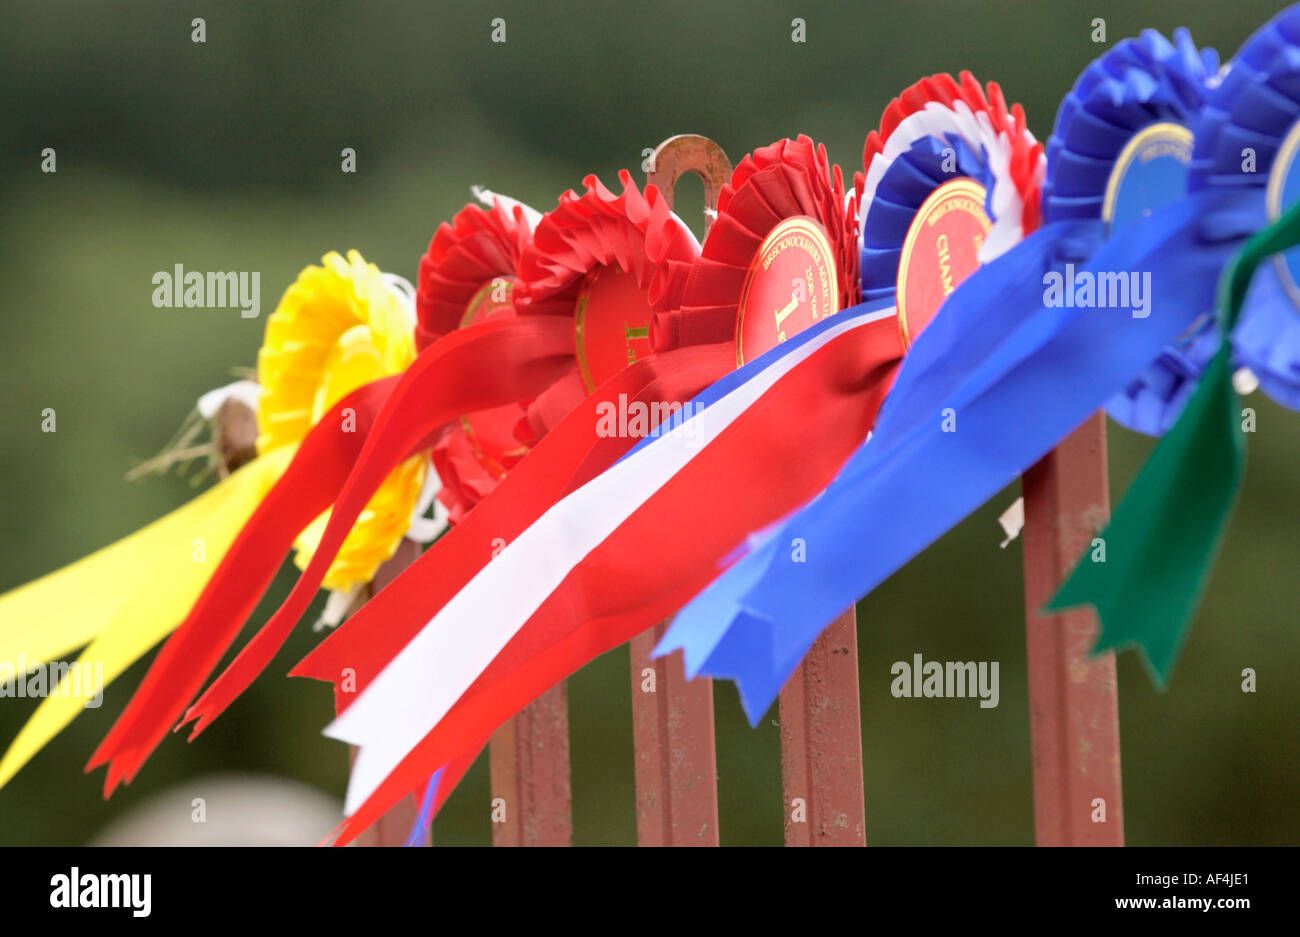 Prizewinning livestock rosettes at Brecknockshire Agricultural Society annual show in its 250th year Brecon Powys Wales UK - Stock Image